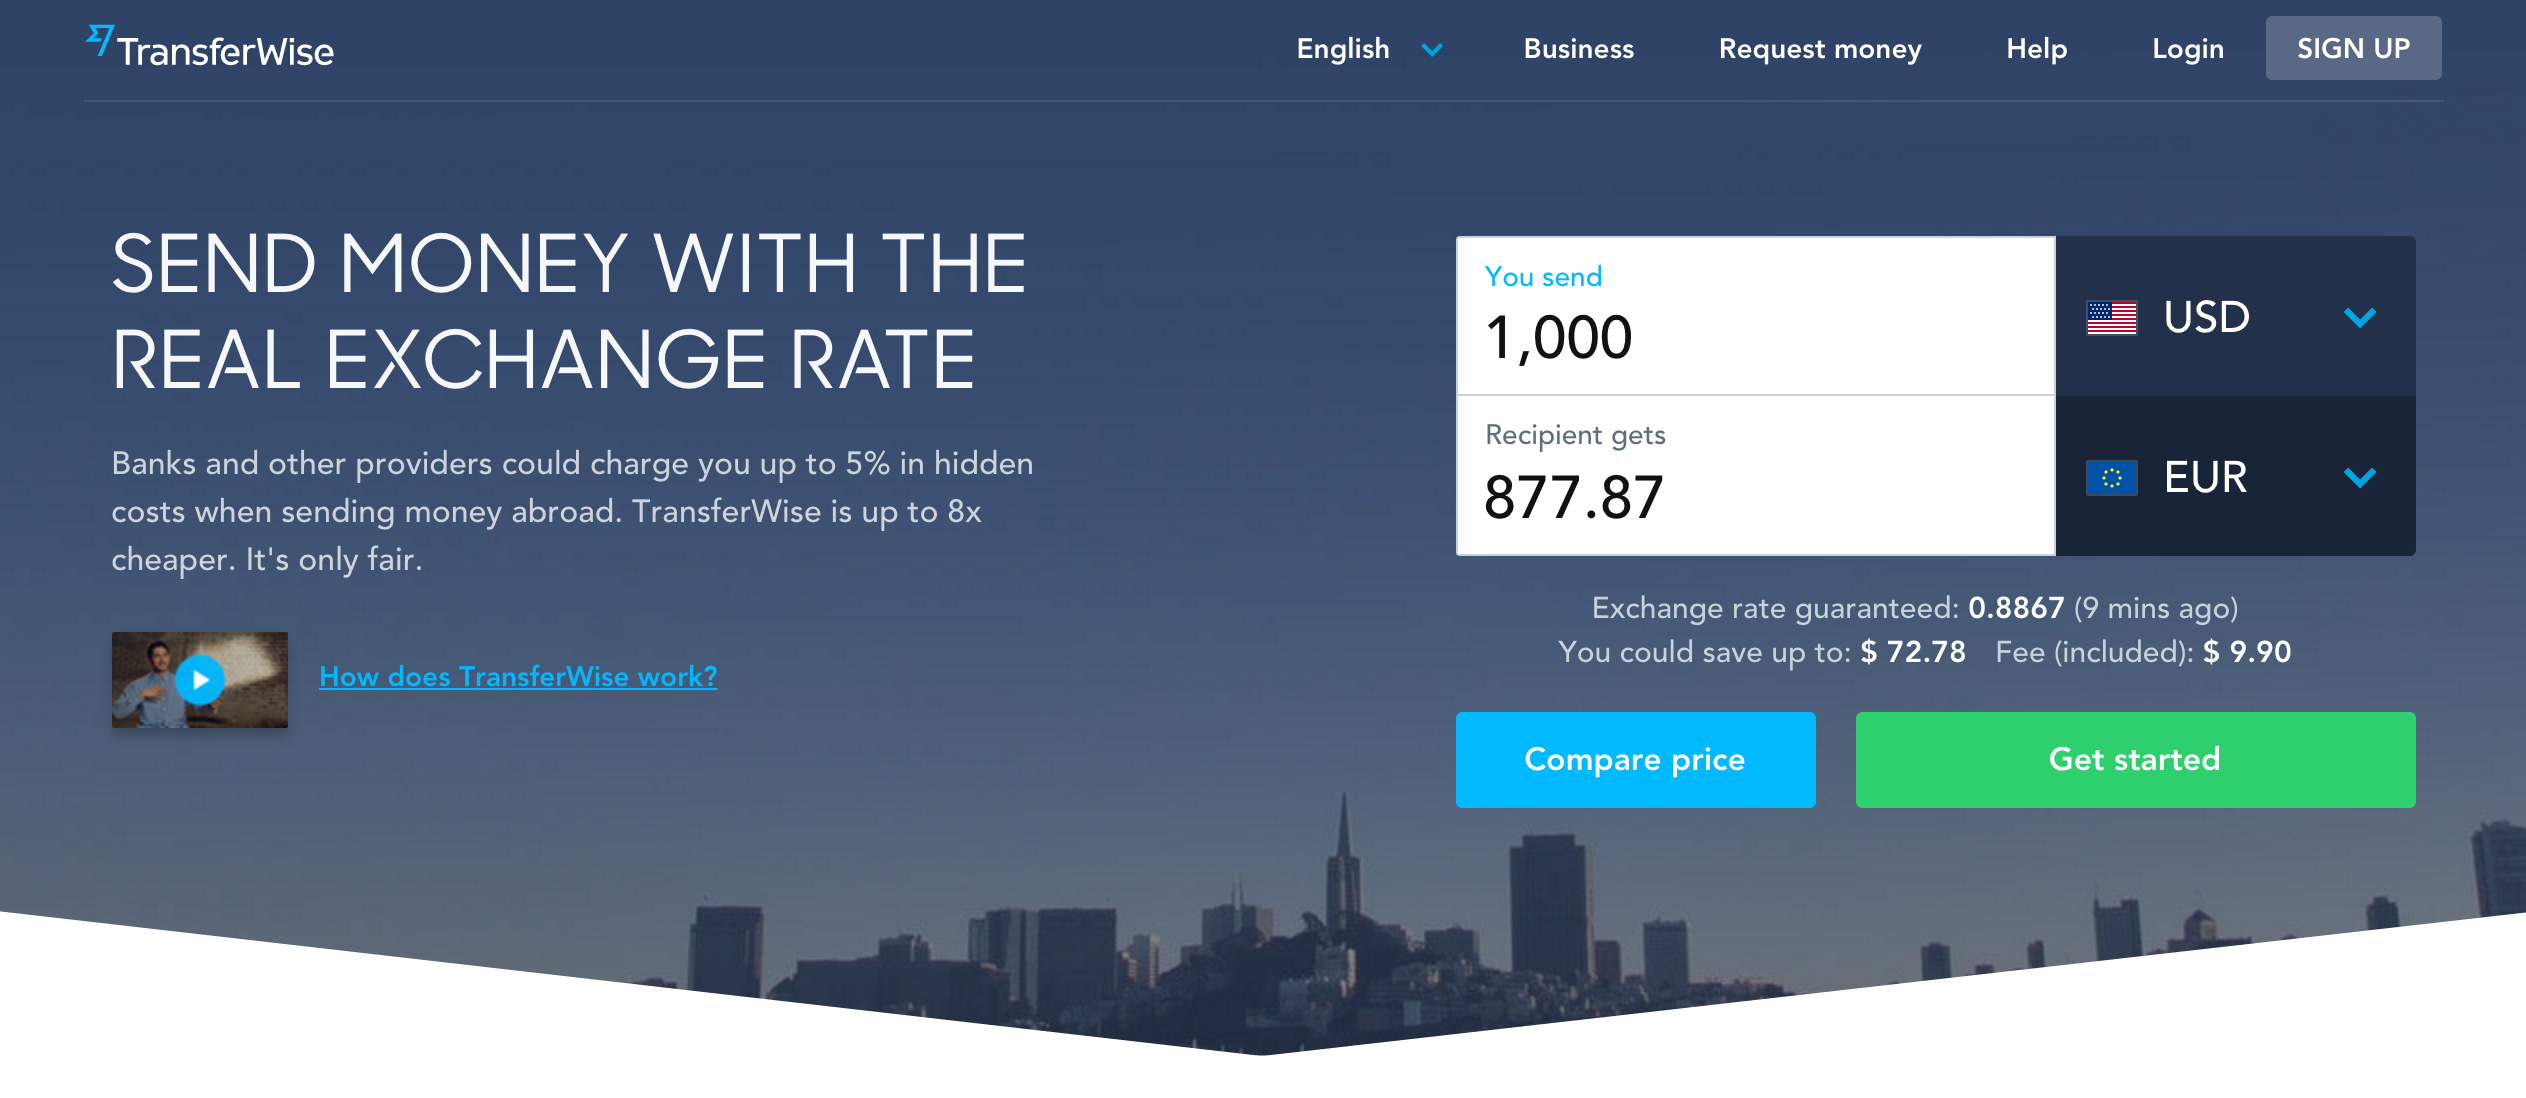 TransferWise Launches TransferWise for Business to the Public